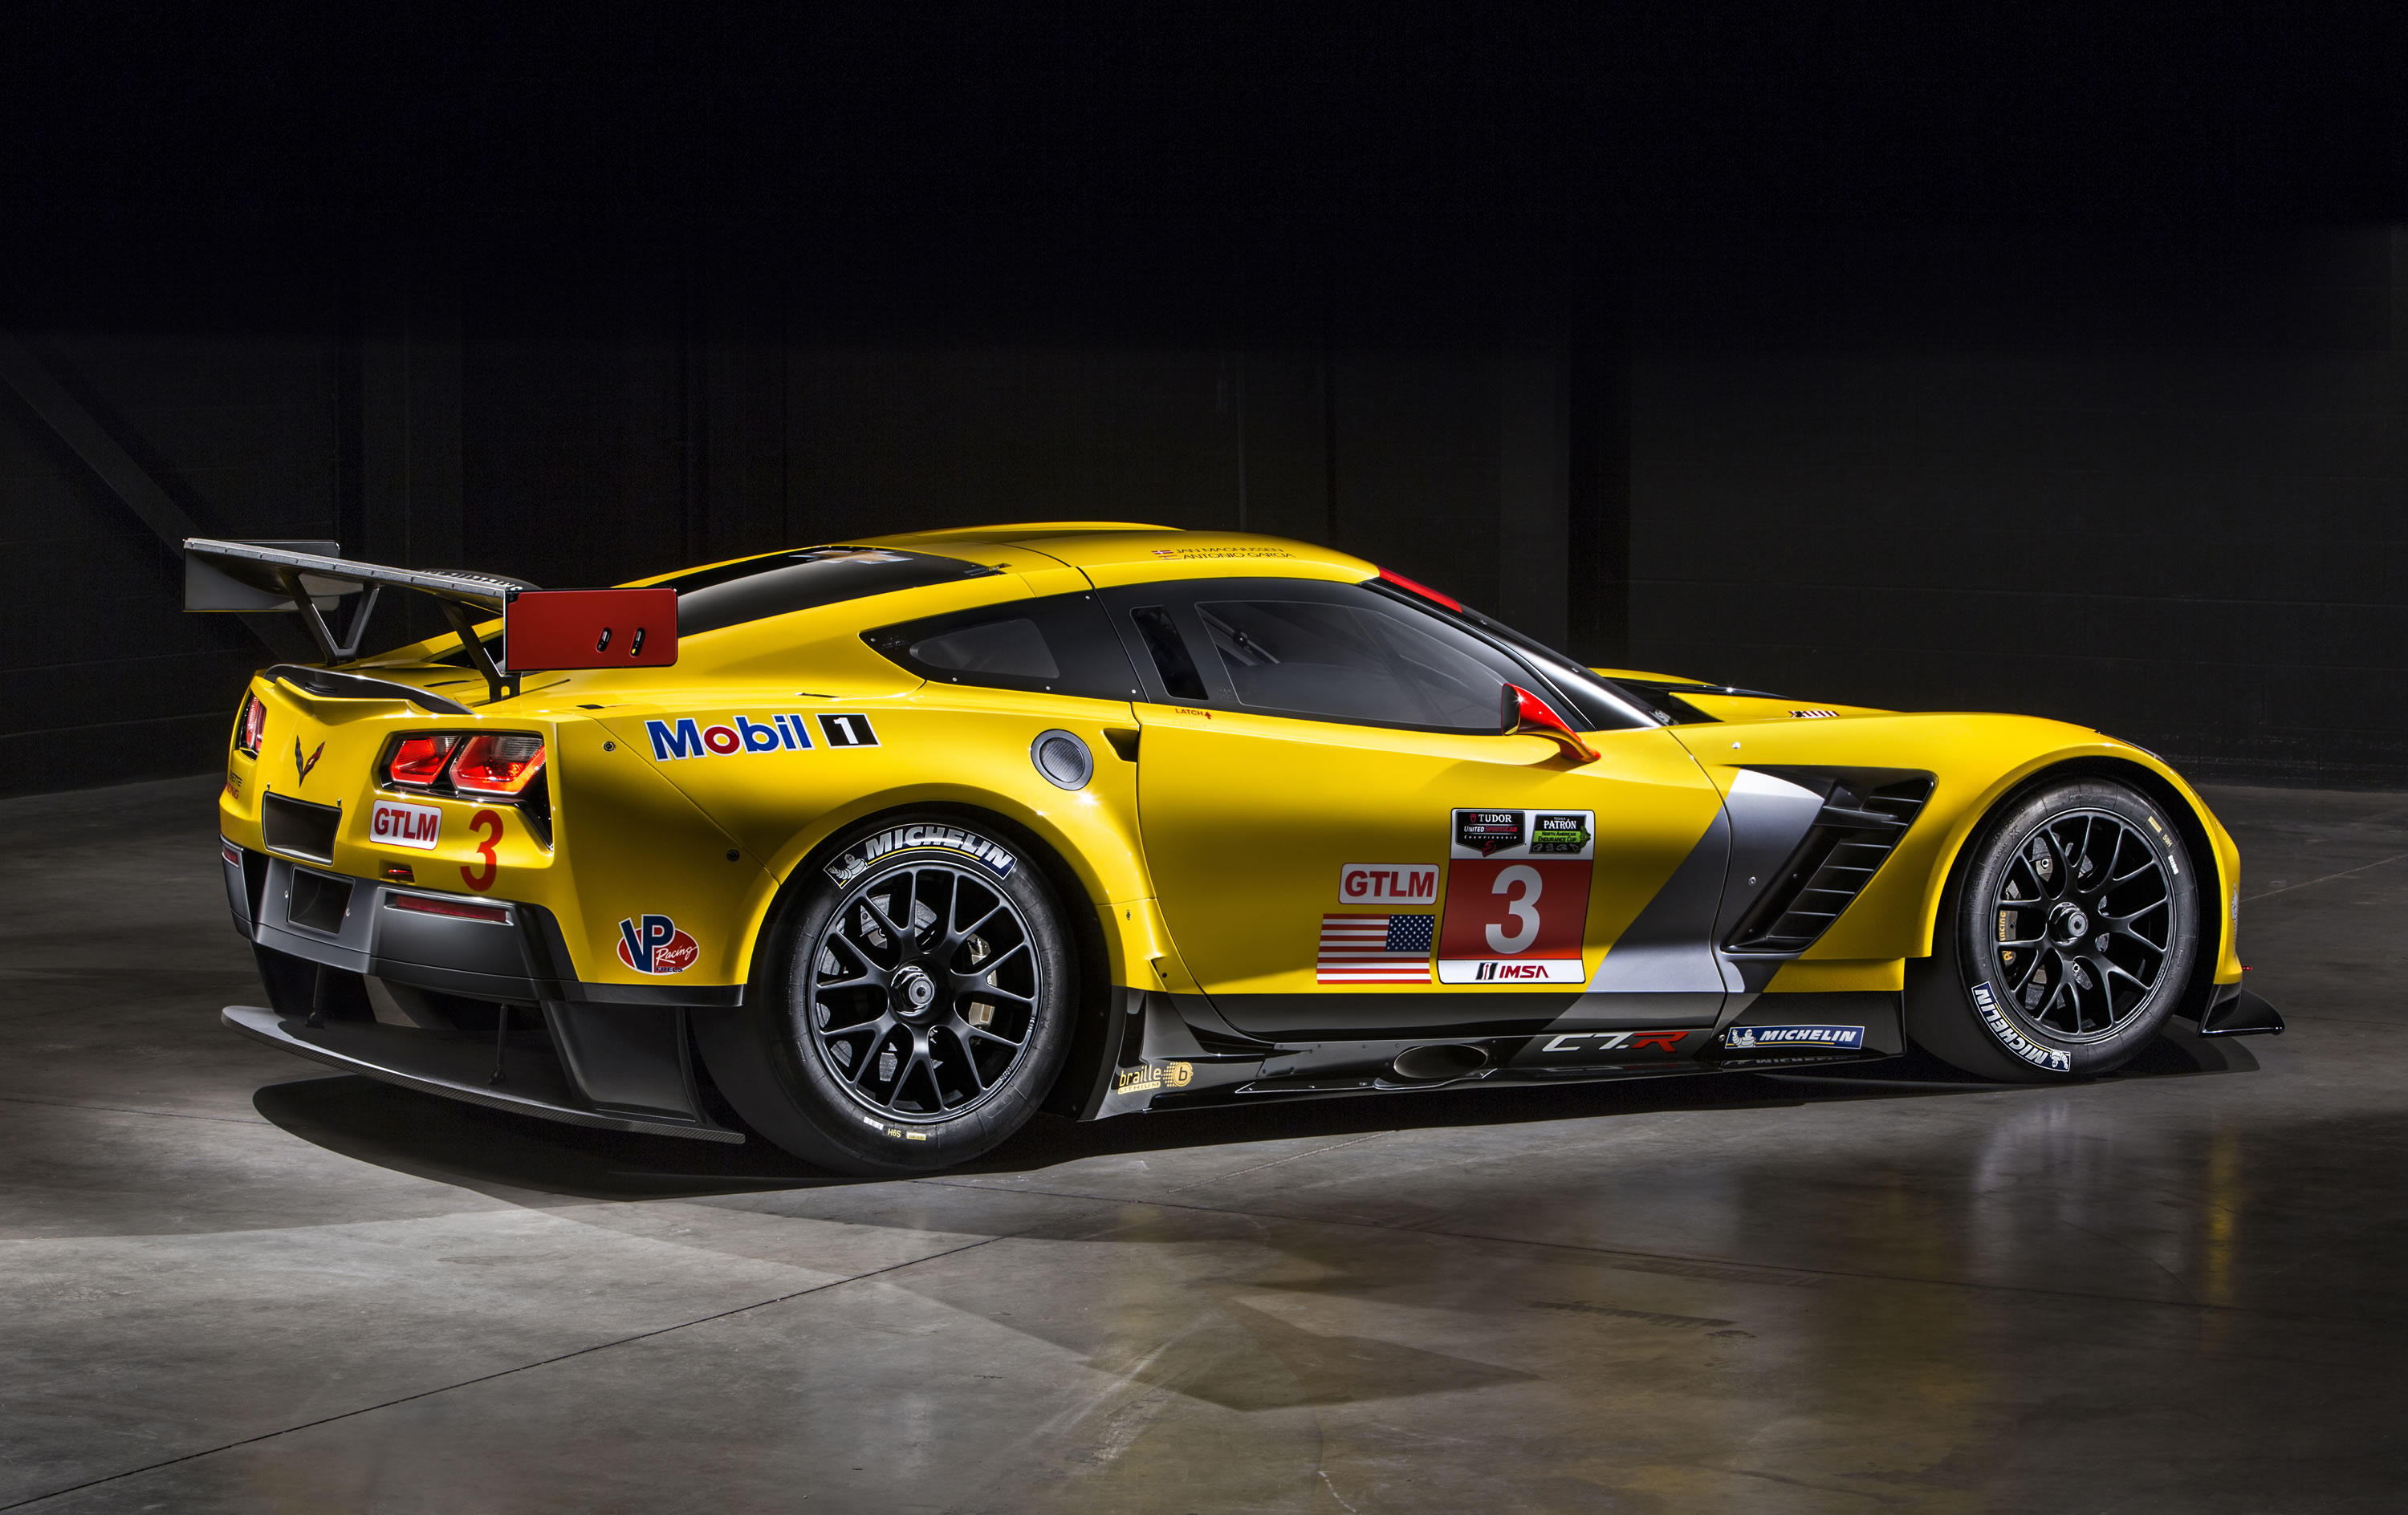 The new Corvette Z06 and C7.R represent the closest link in modern